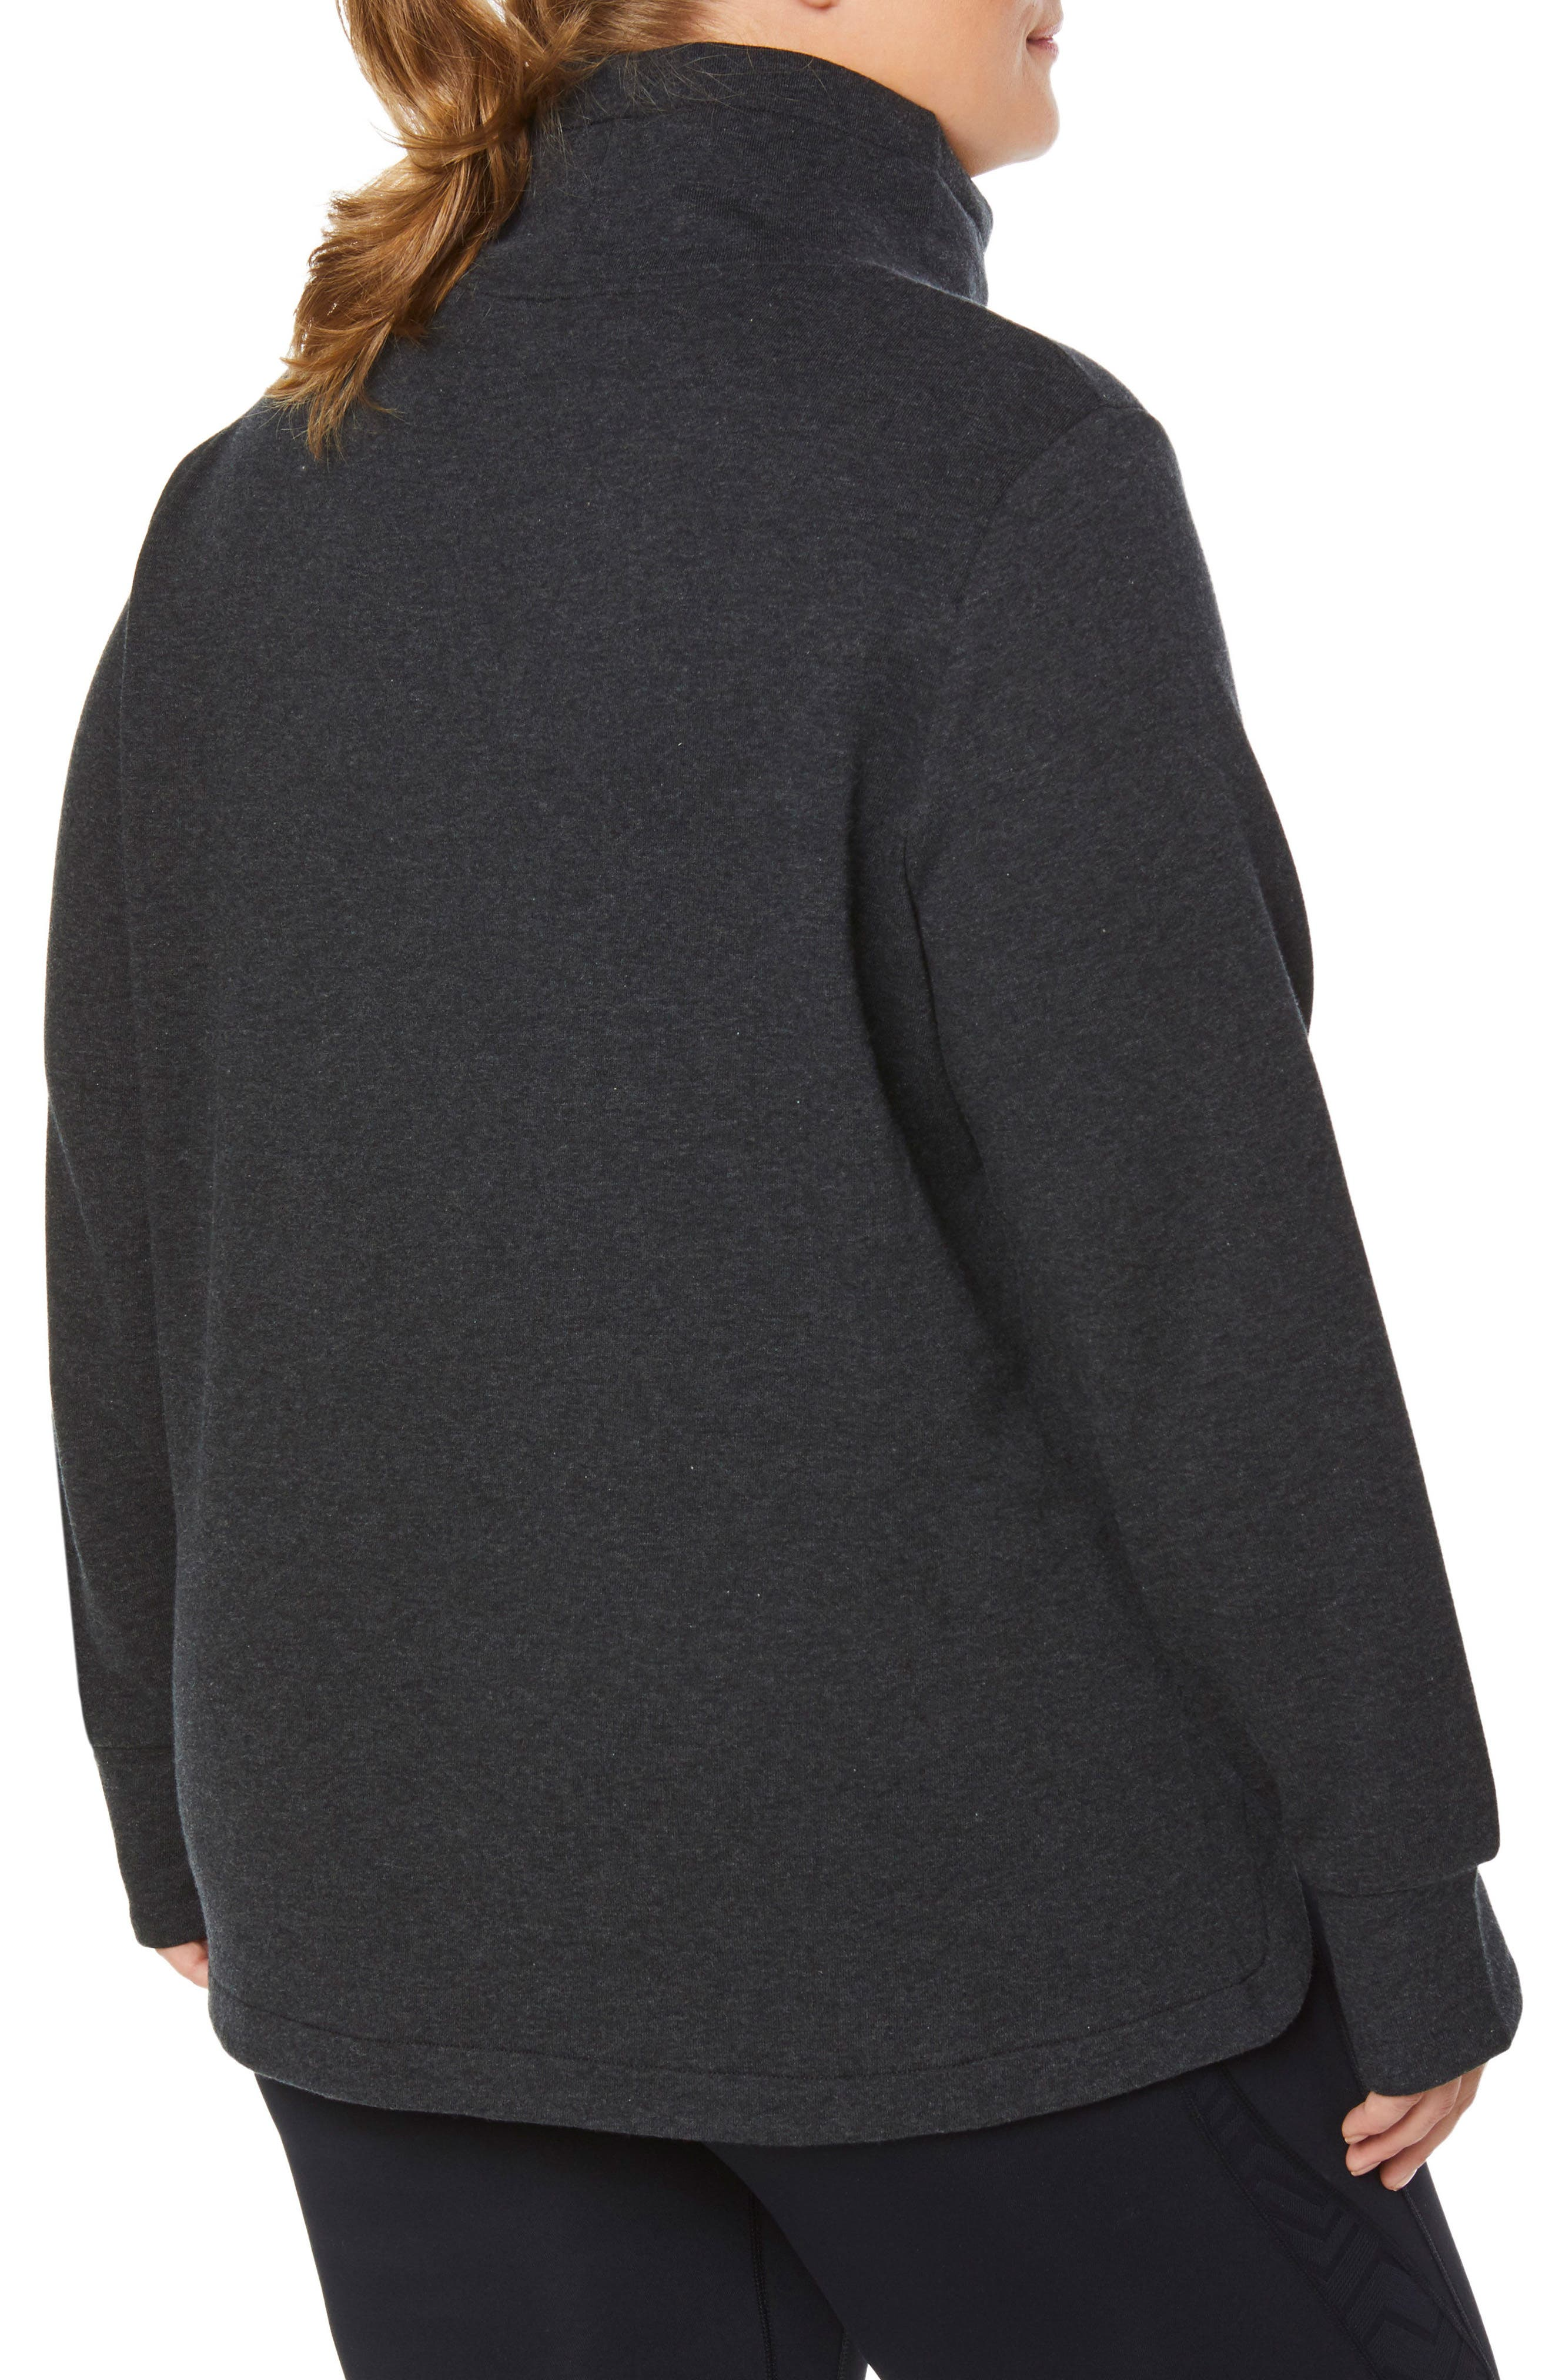 Saturday Mock Neck Pullover,                             Alternate thumbnail 2, color,                             CHARCOAL BLACK